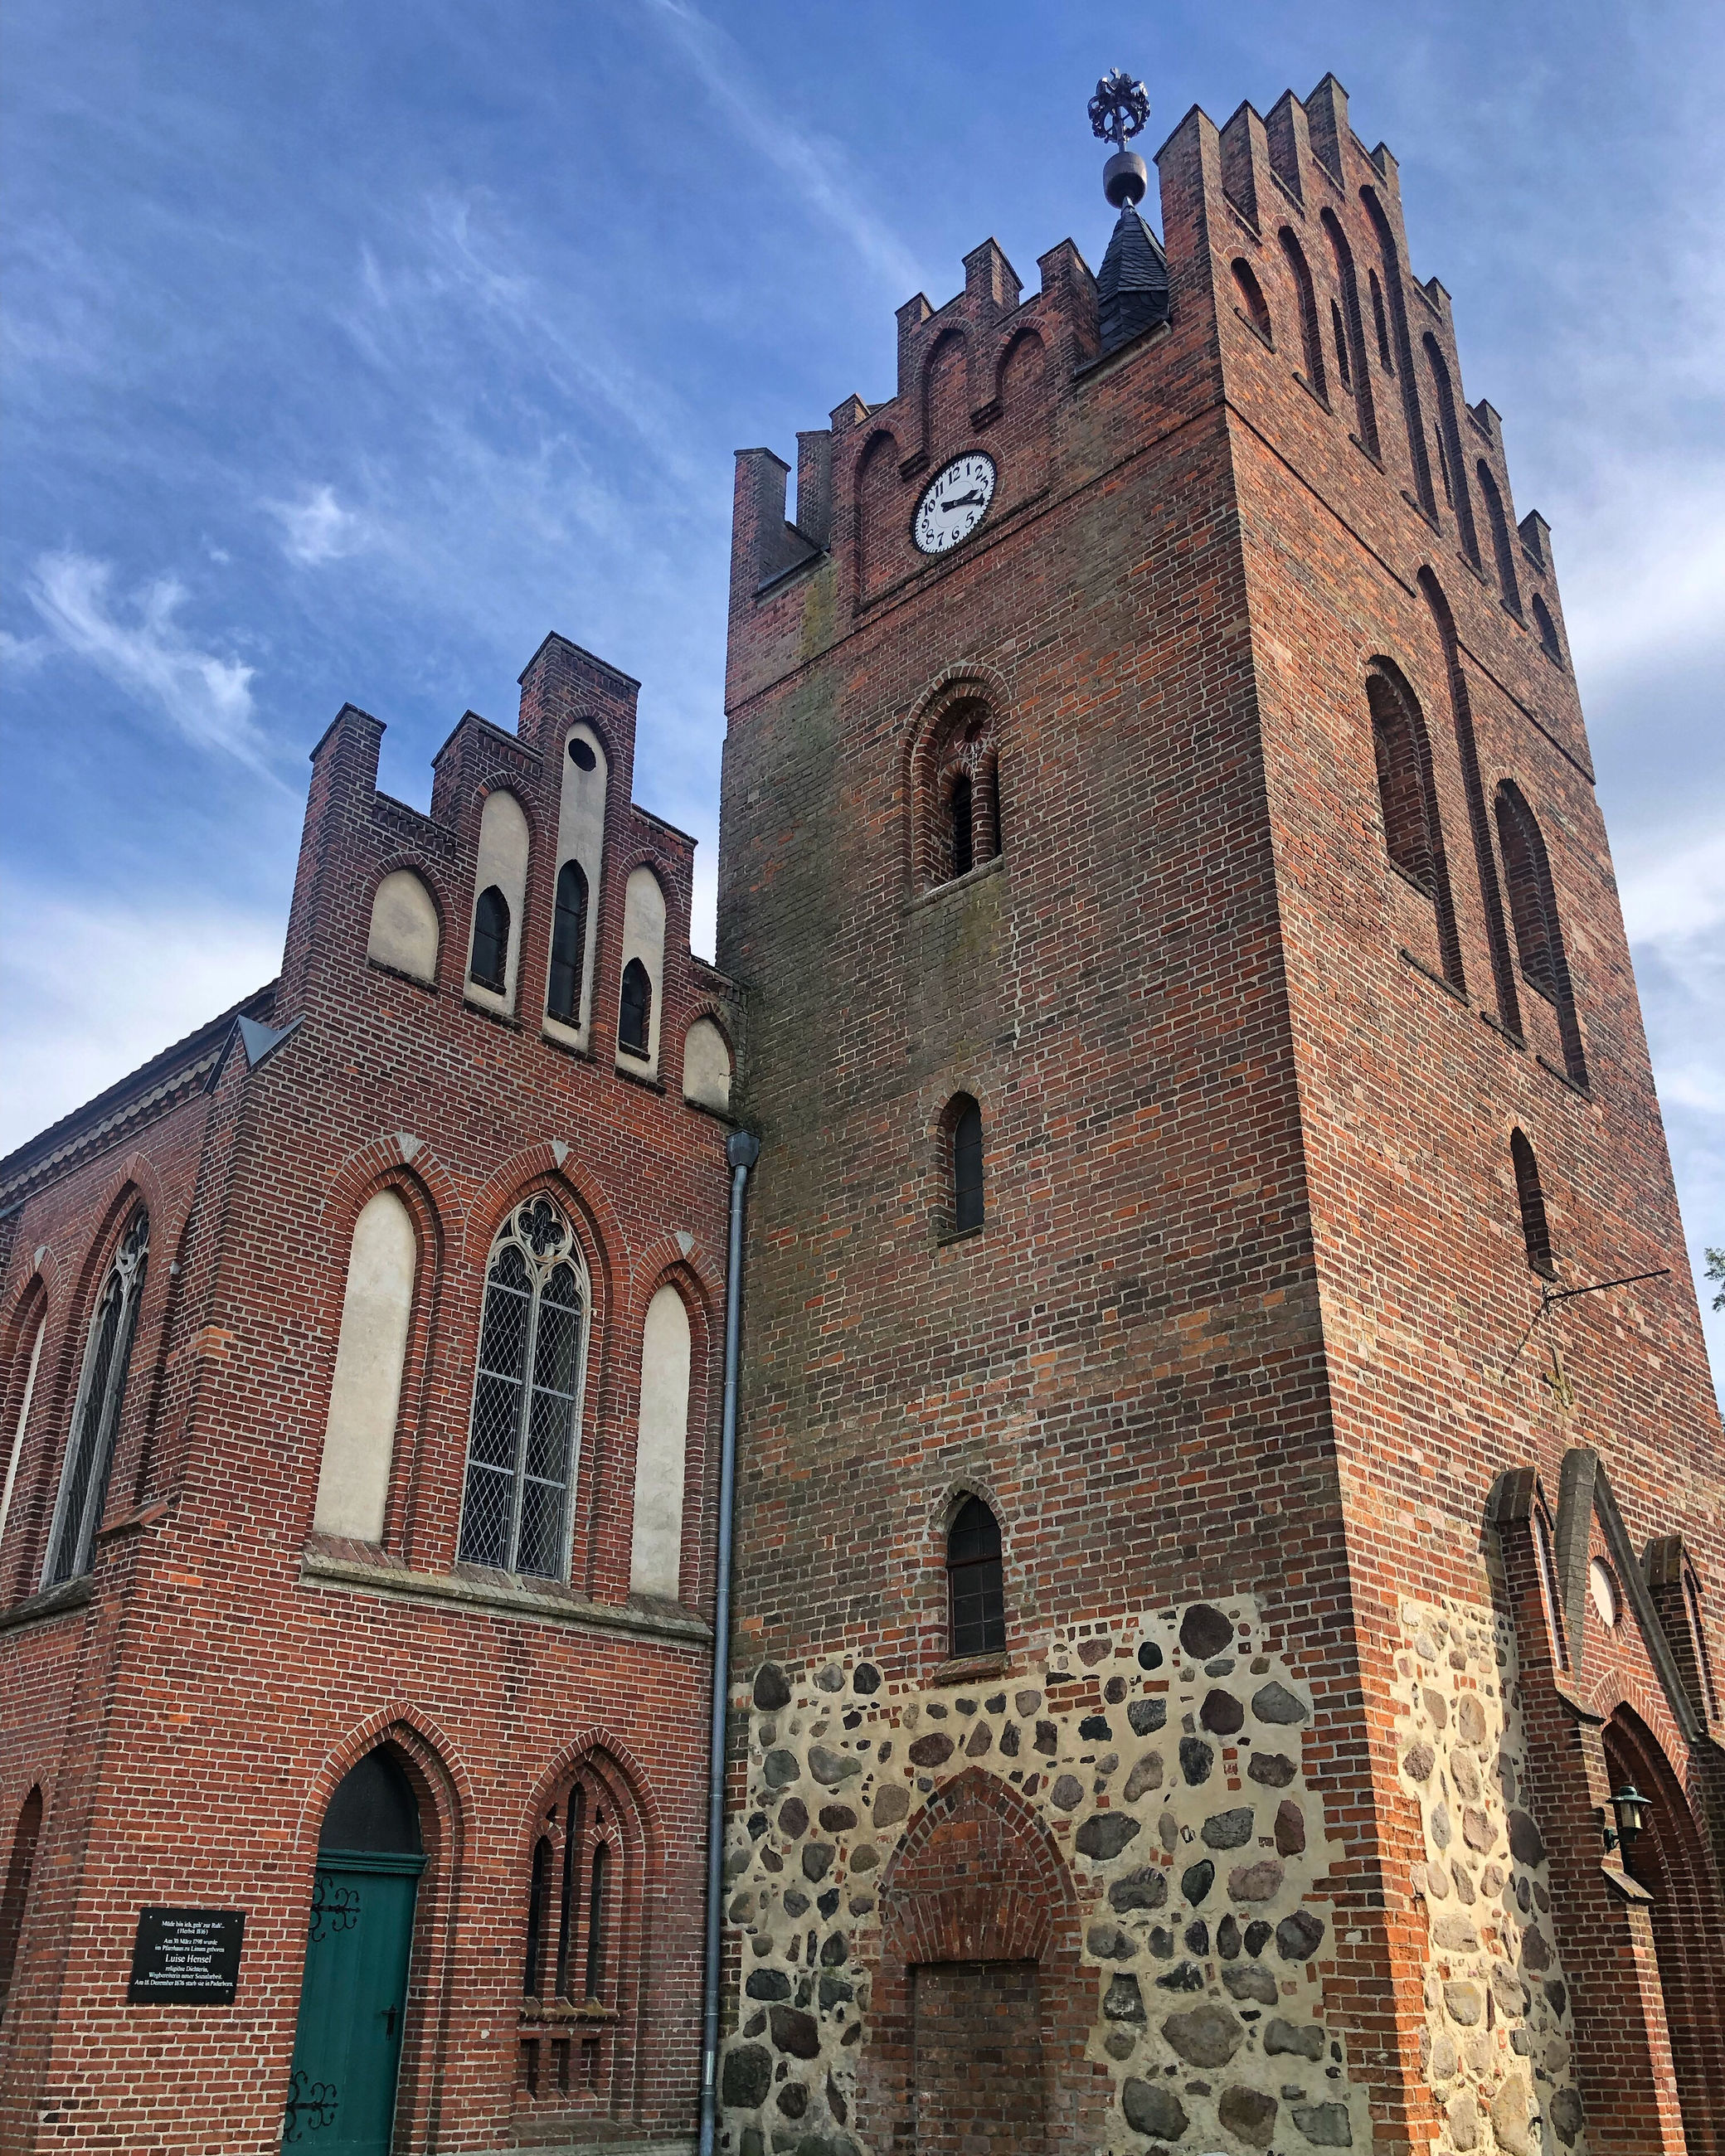 building exterior, architecture, built structure, sky, low angle view, building, history, tower, the past, nature, window, no people, place of worship, day, belief, religion, spirituality, cloud - sky, arch, outdoors, clock